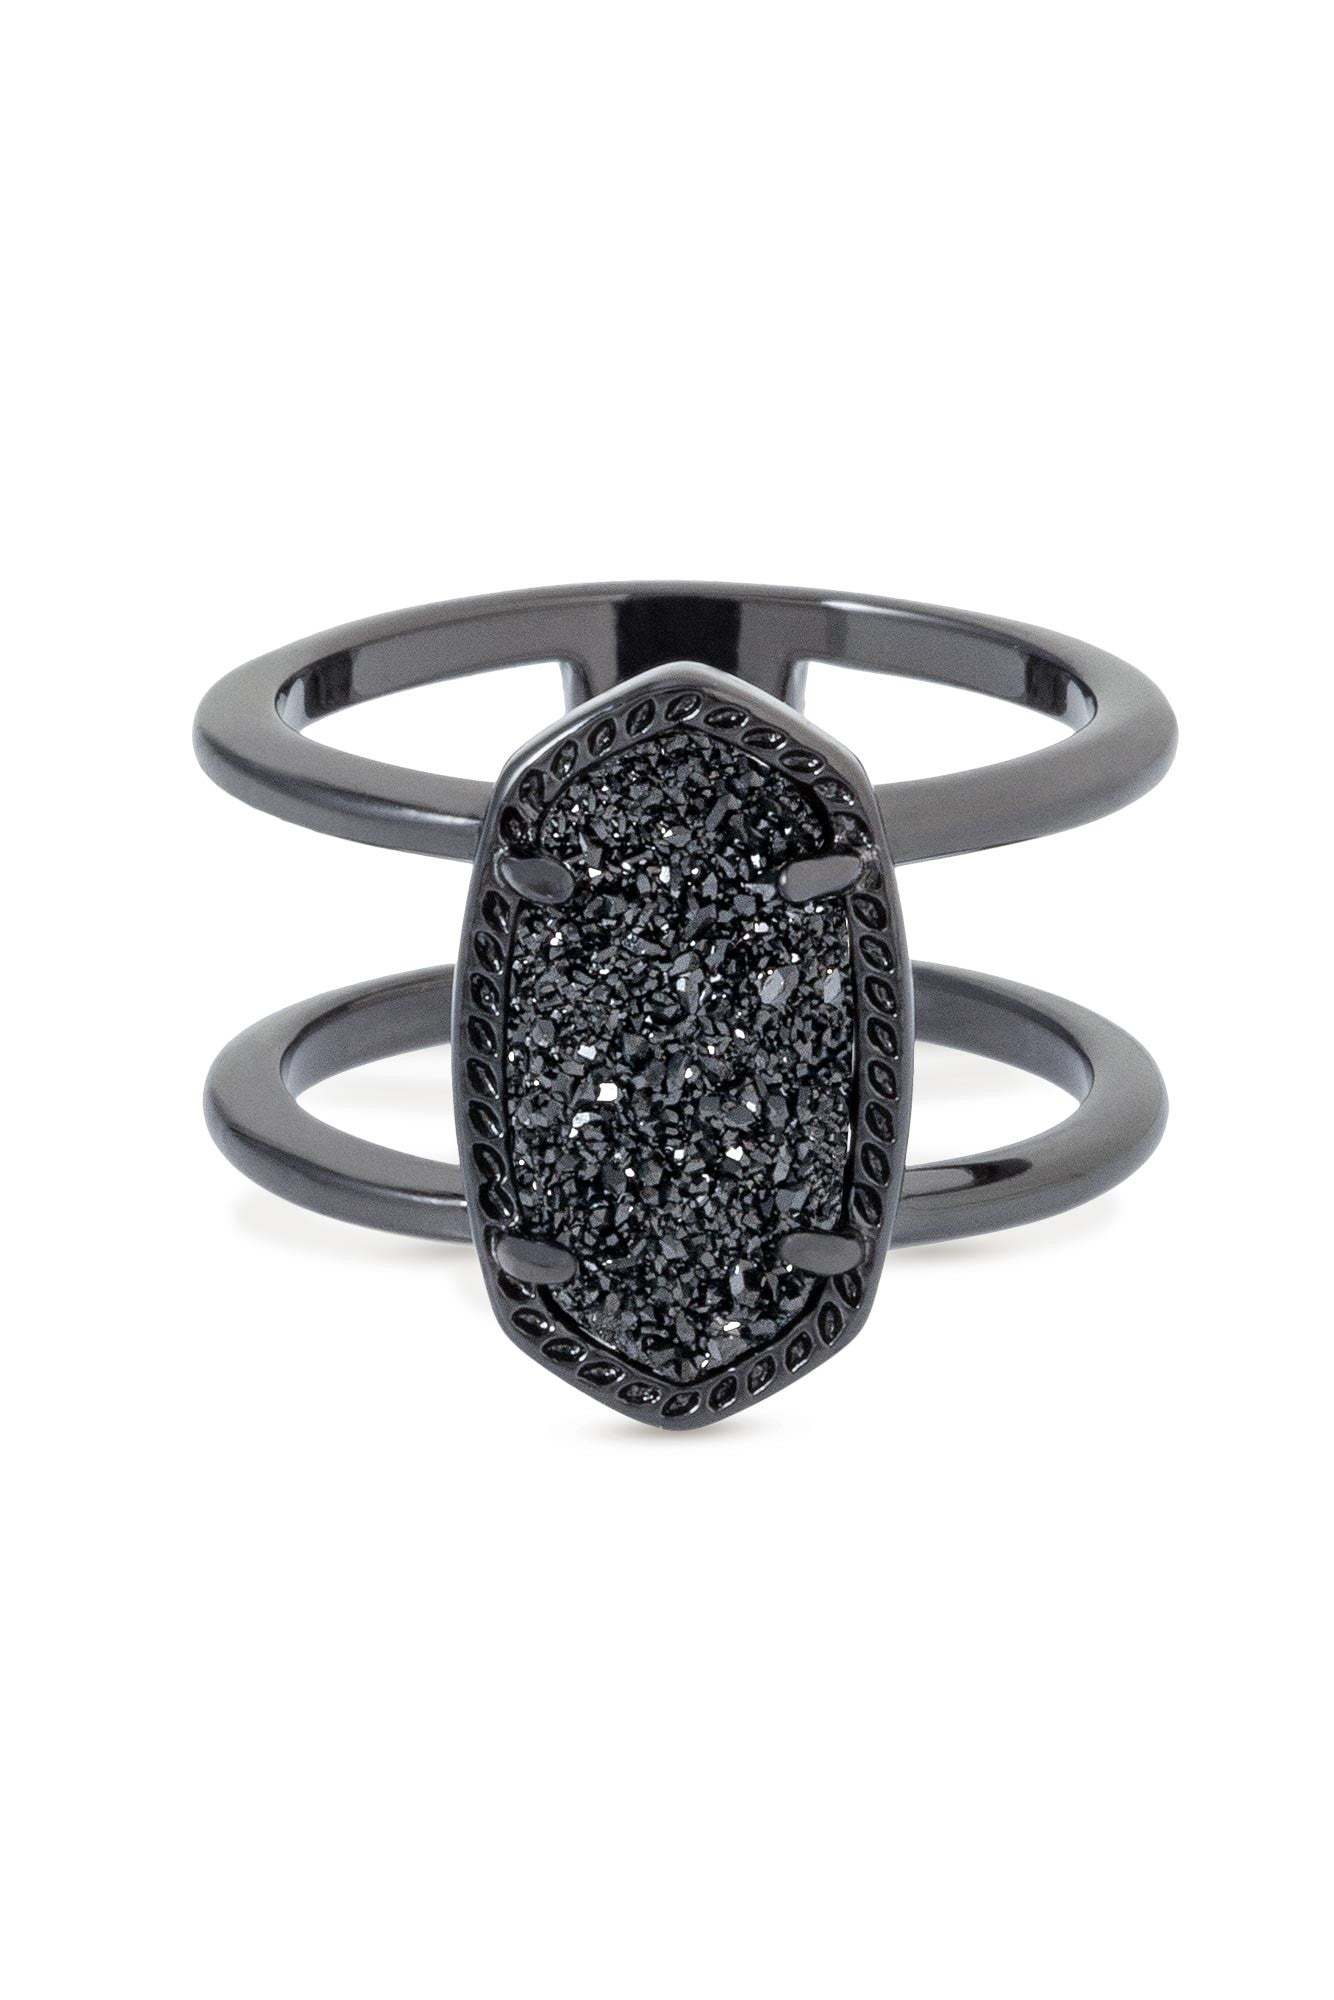 Kendra Scott Elyse Ring in Gunmetal and Black Drusy